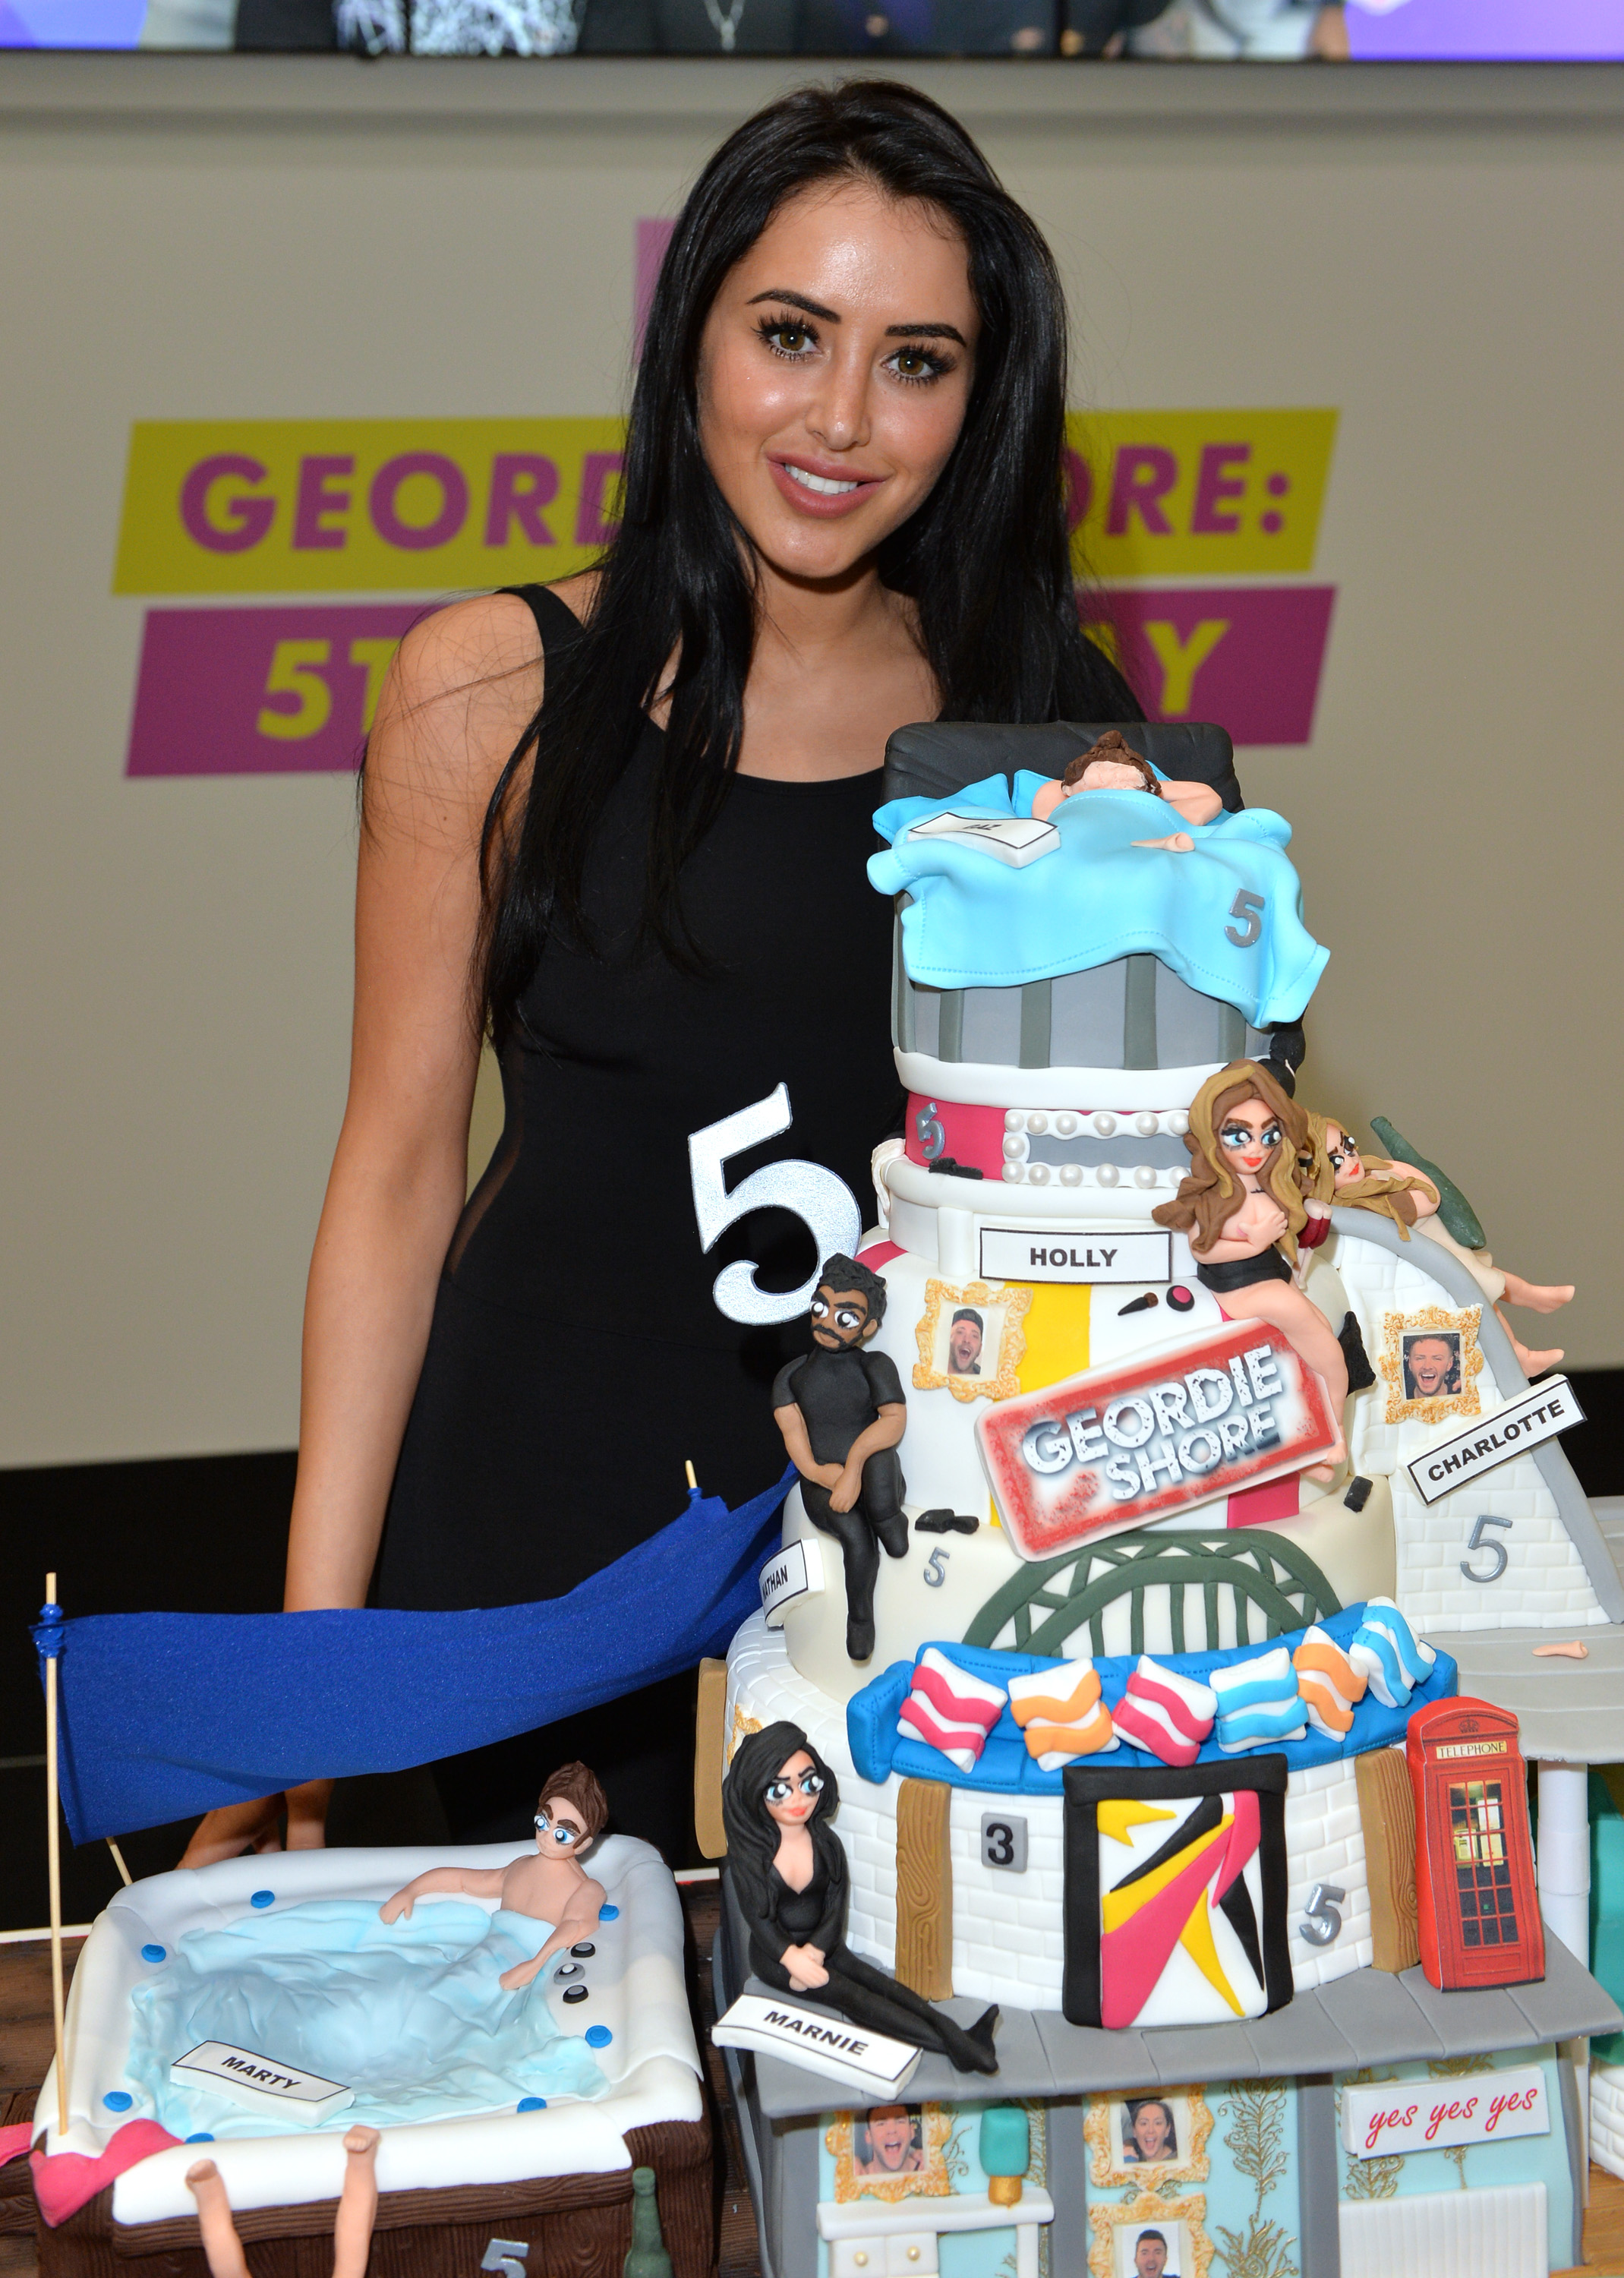 LONDON, ENGLAND - MAY 24: Marnie Simpson of Geordie Shore celebrate their fifth birthday at MTV London on May 24, 2016 in London, England. (Photo by Anthony Harvey/Getty Images) *** Local Caption *** Marnie Simpson